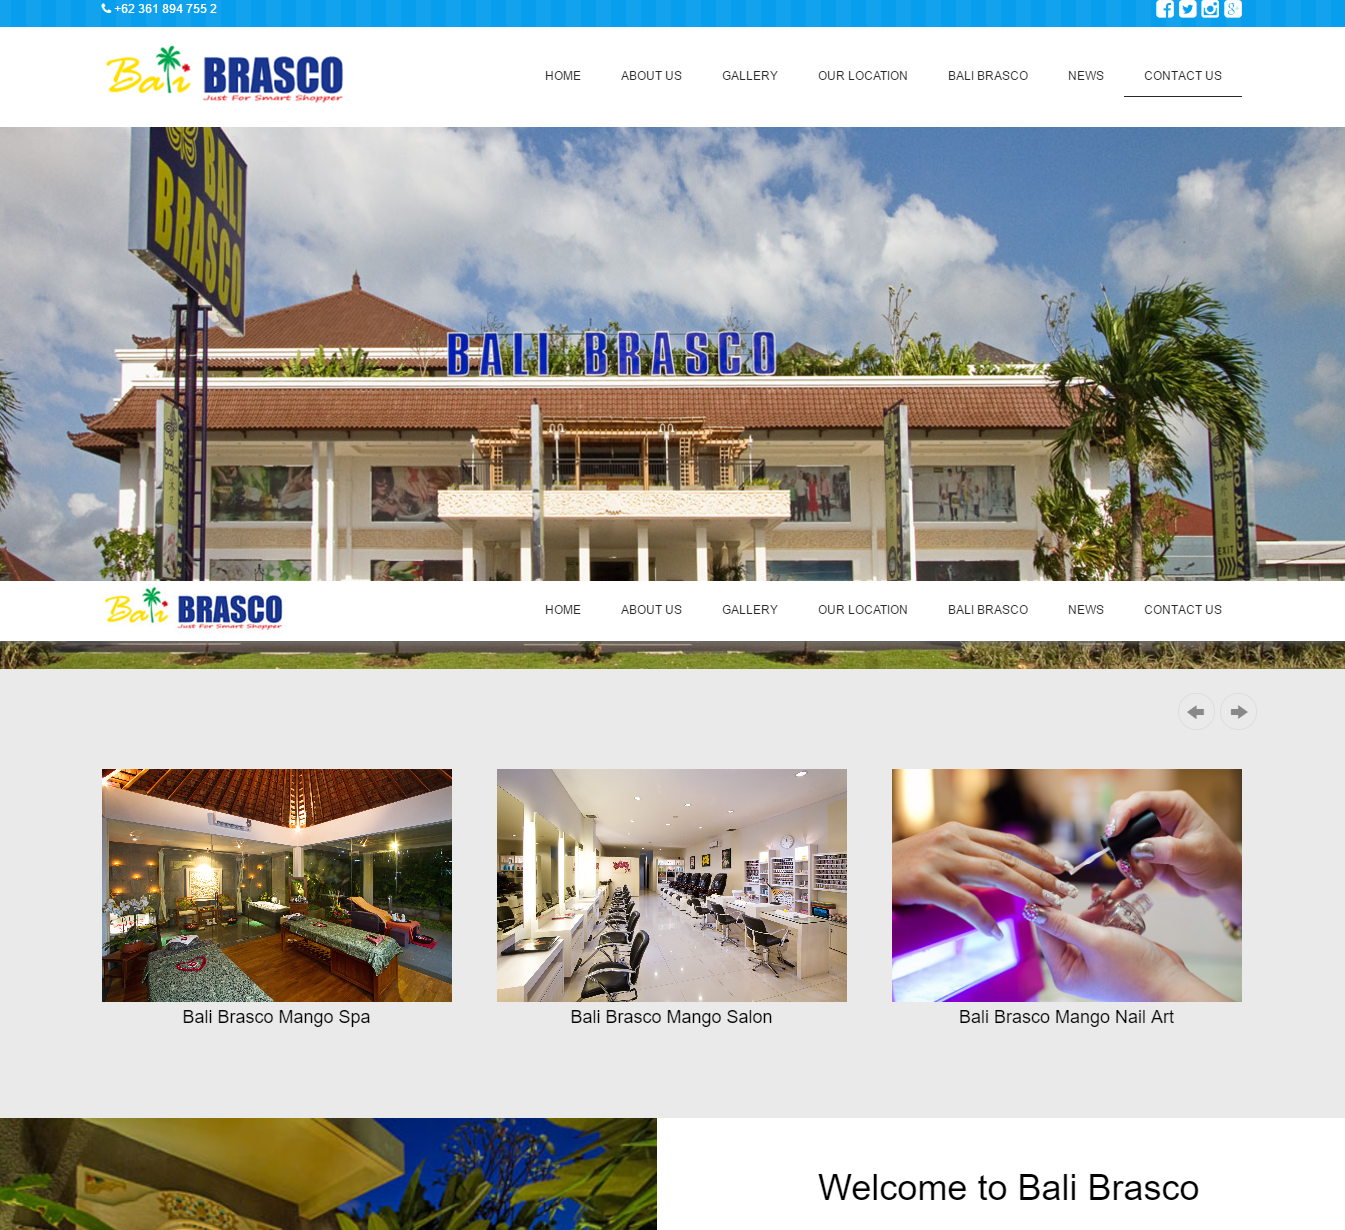 Bali Brasco Shopping Centre Factory Outlet Shopping Mall And Bali